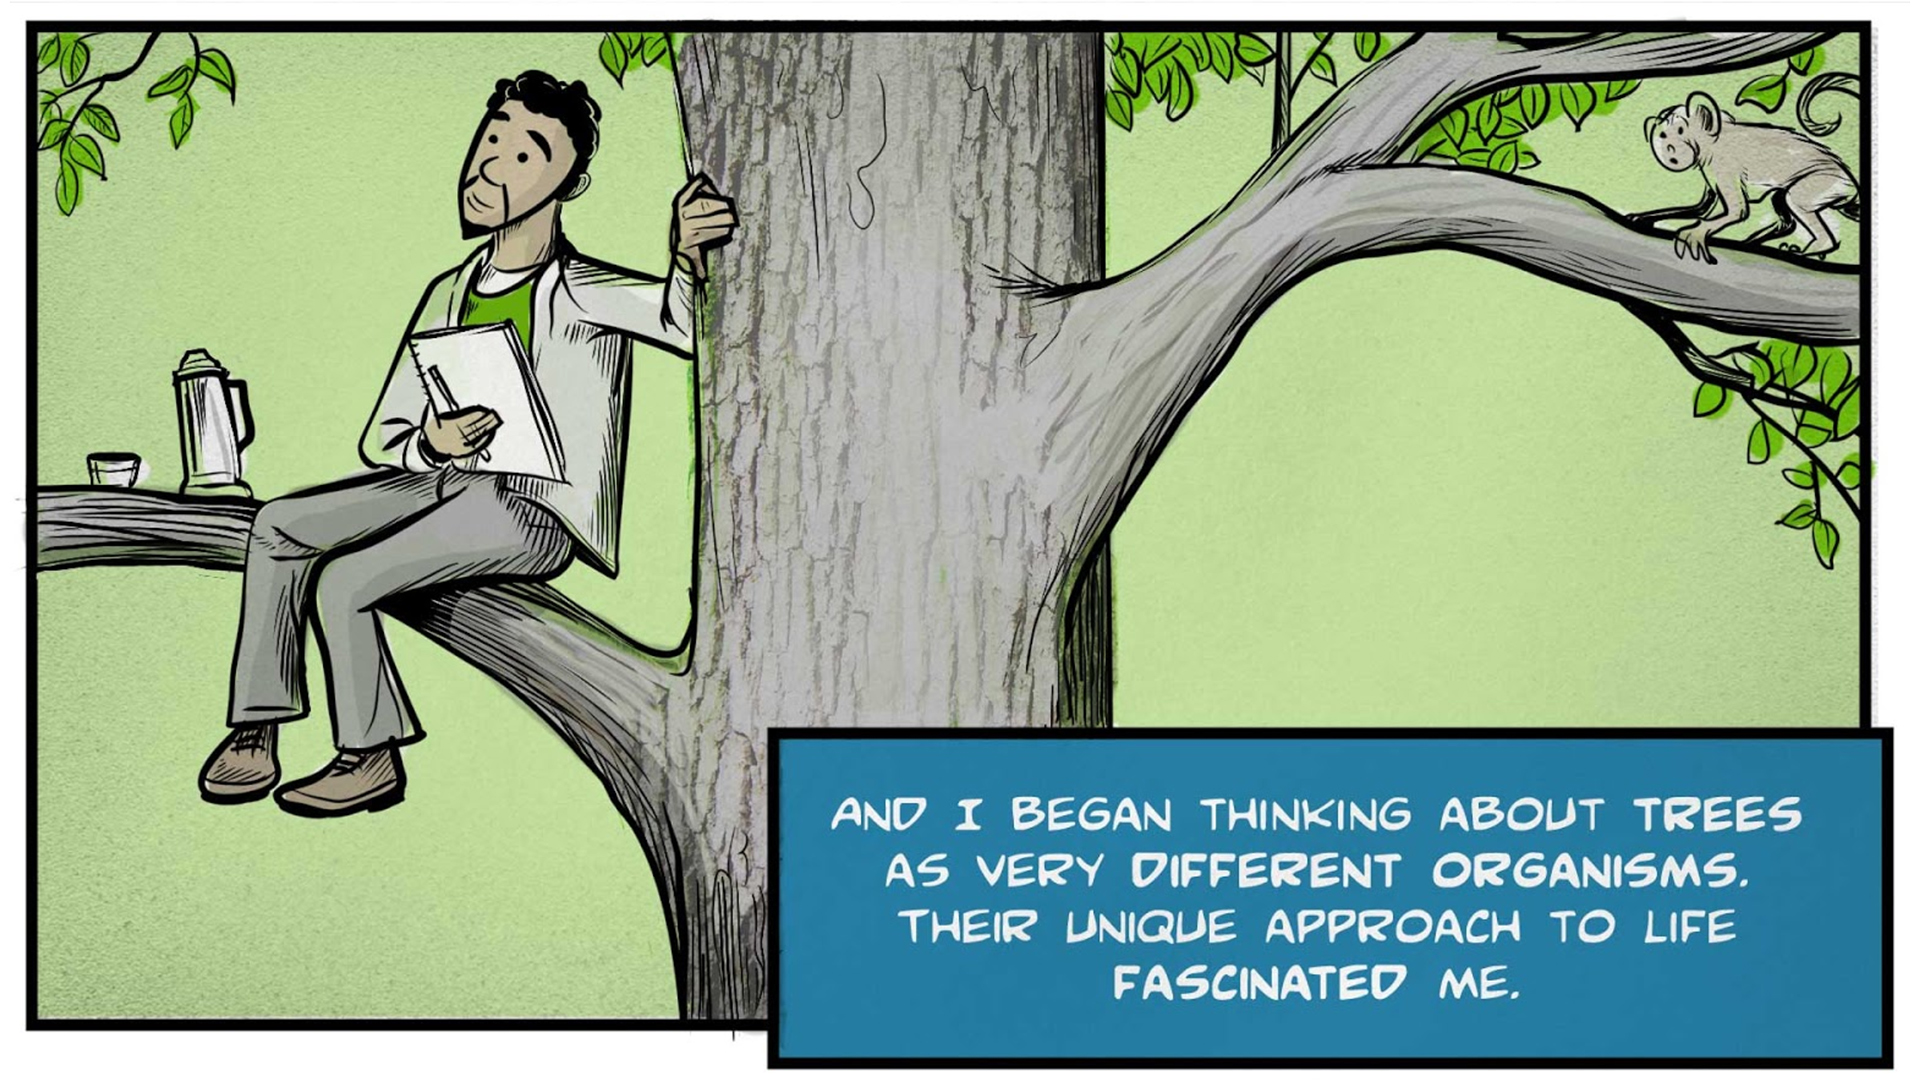 """Felix, the narrator, says, """"And I began thinking about trees as very different organisms. Their unique approach to life fascinated me."""" He sits high on the branch of a tree, feet dangling, hand resting on the trunk. He holds a notebook and a thermos sits next to him."""